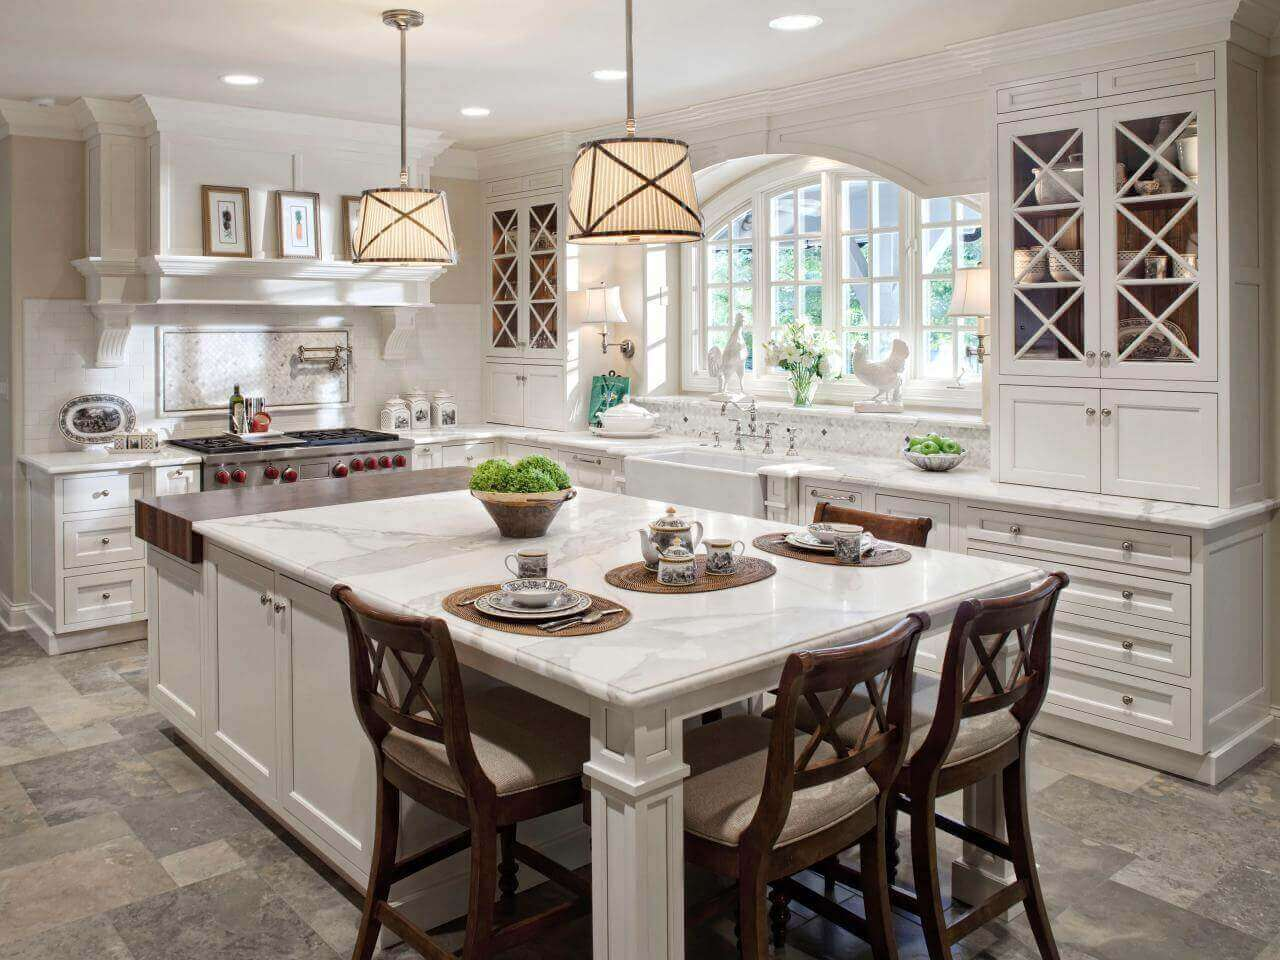 68 Deluxe Custom Kitchen Island Ideas Jaw Dropping Designs